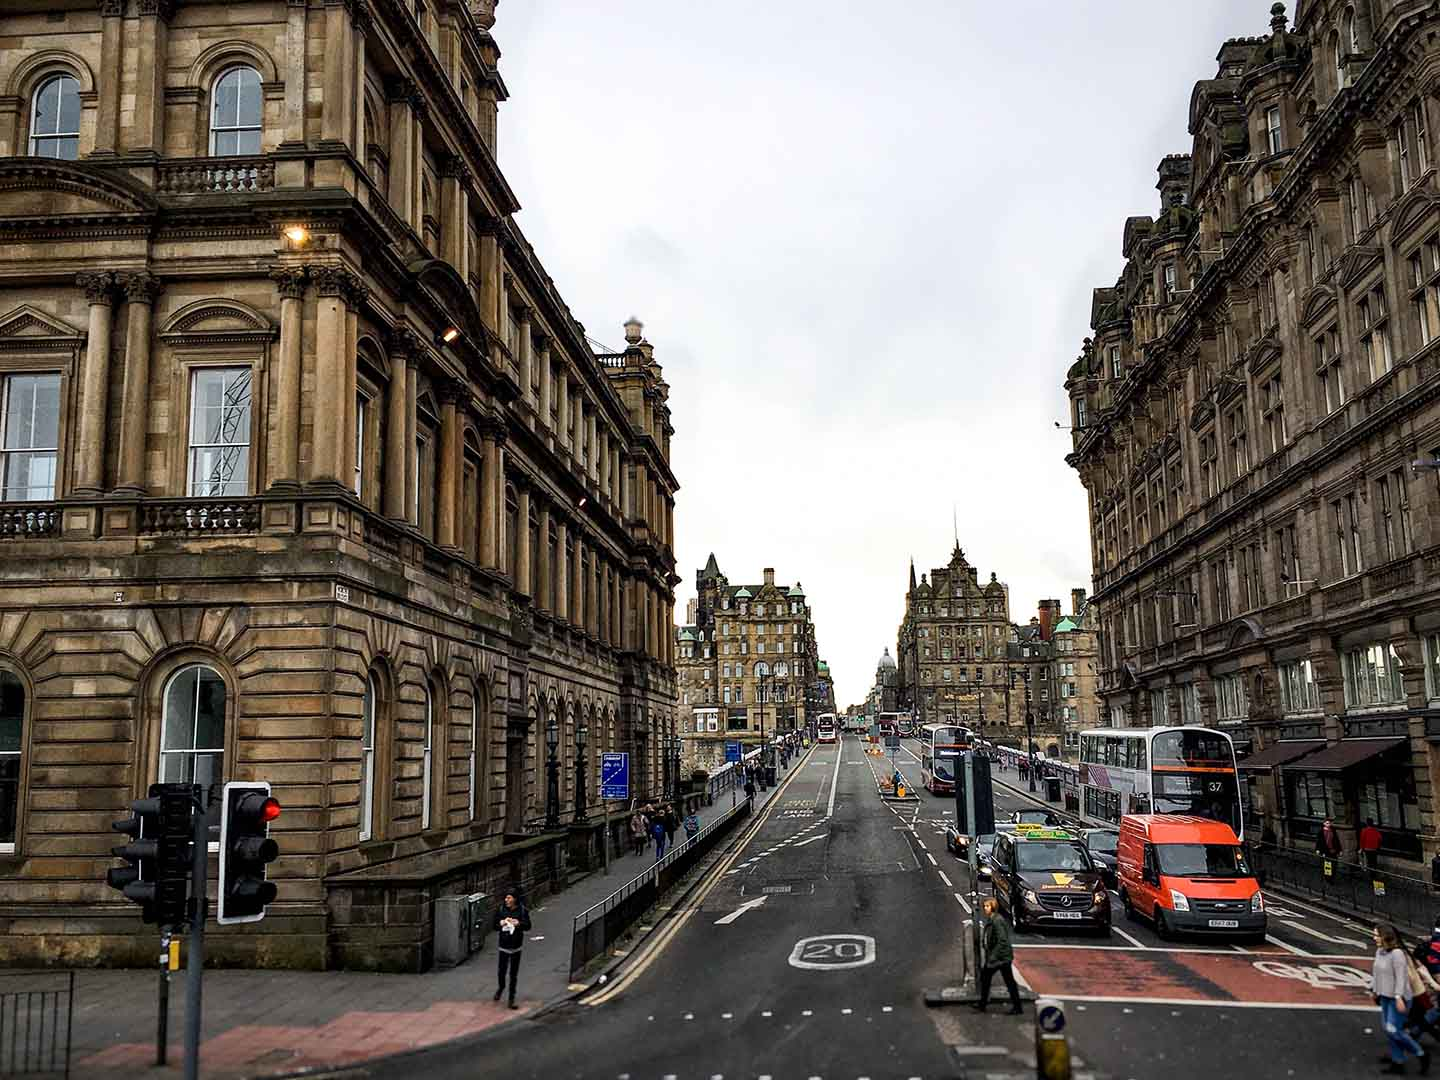 Edinburgh's city streets, seen from a Hop-on hop-off bus tour | Image © ExpatAlli.com